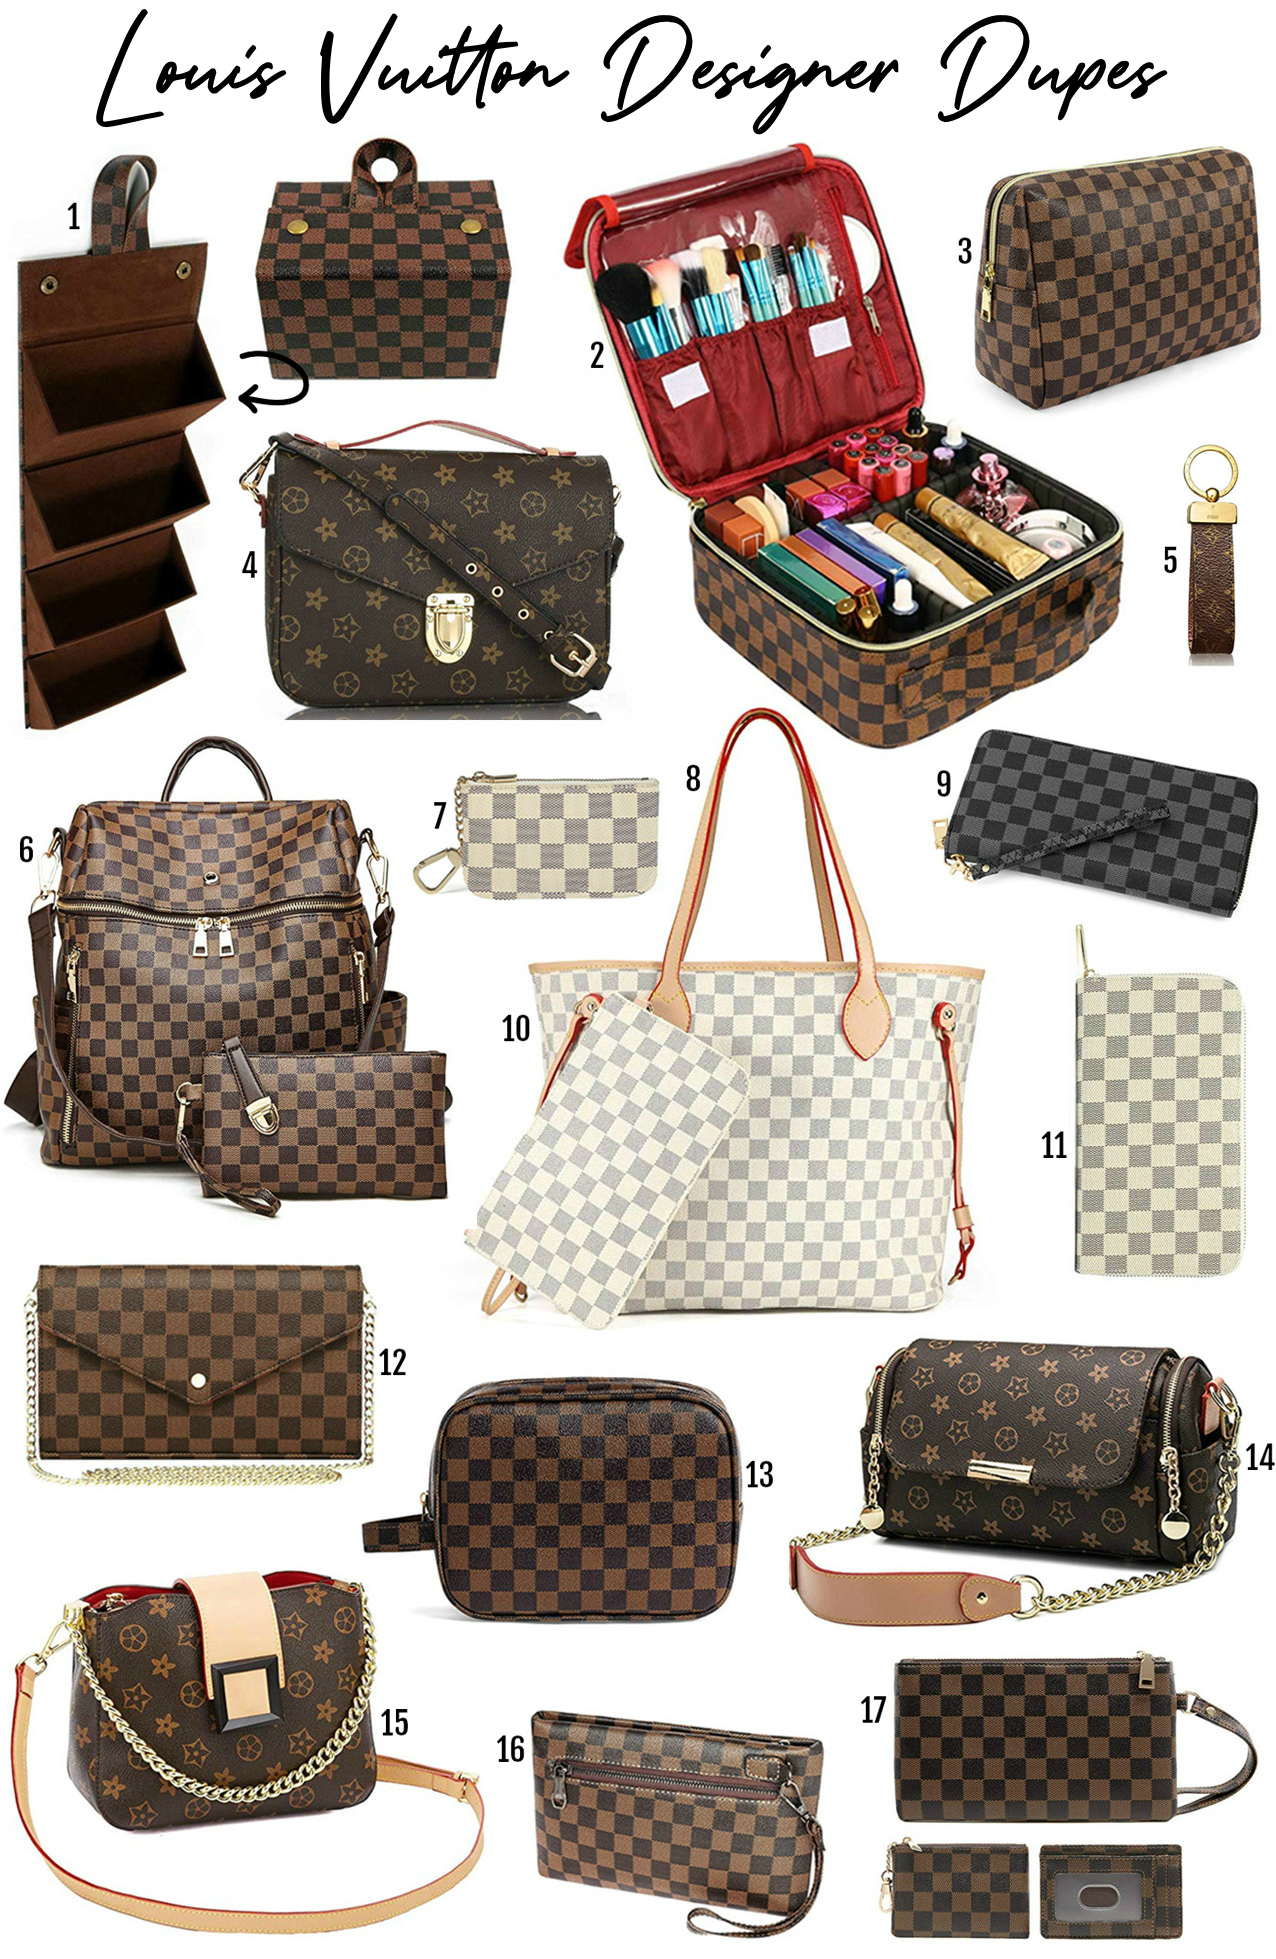 Louis Vuitton Dupes From Style